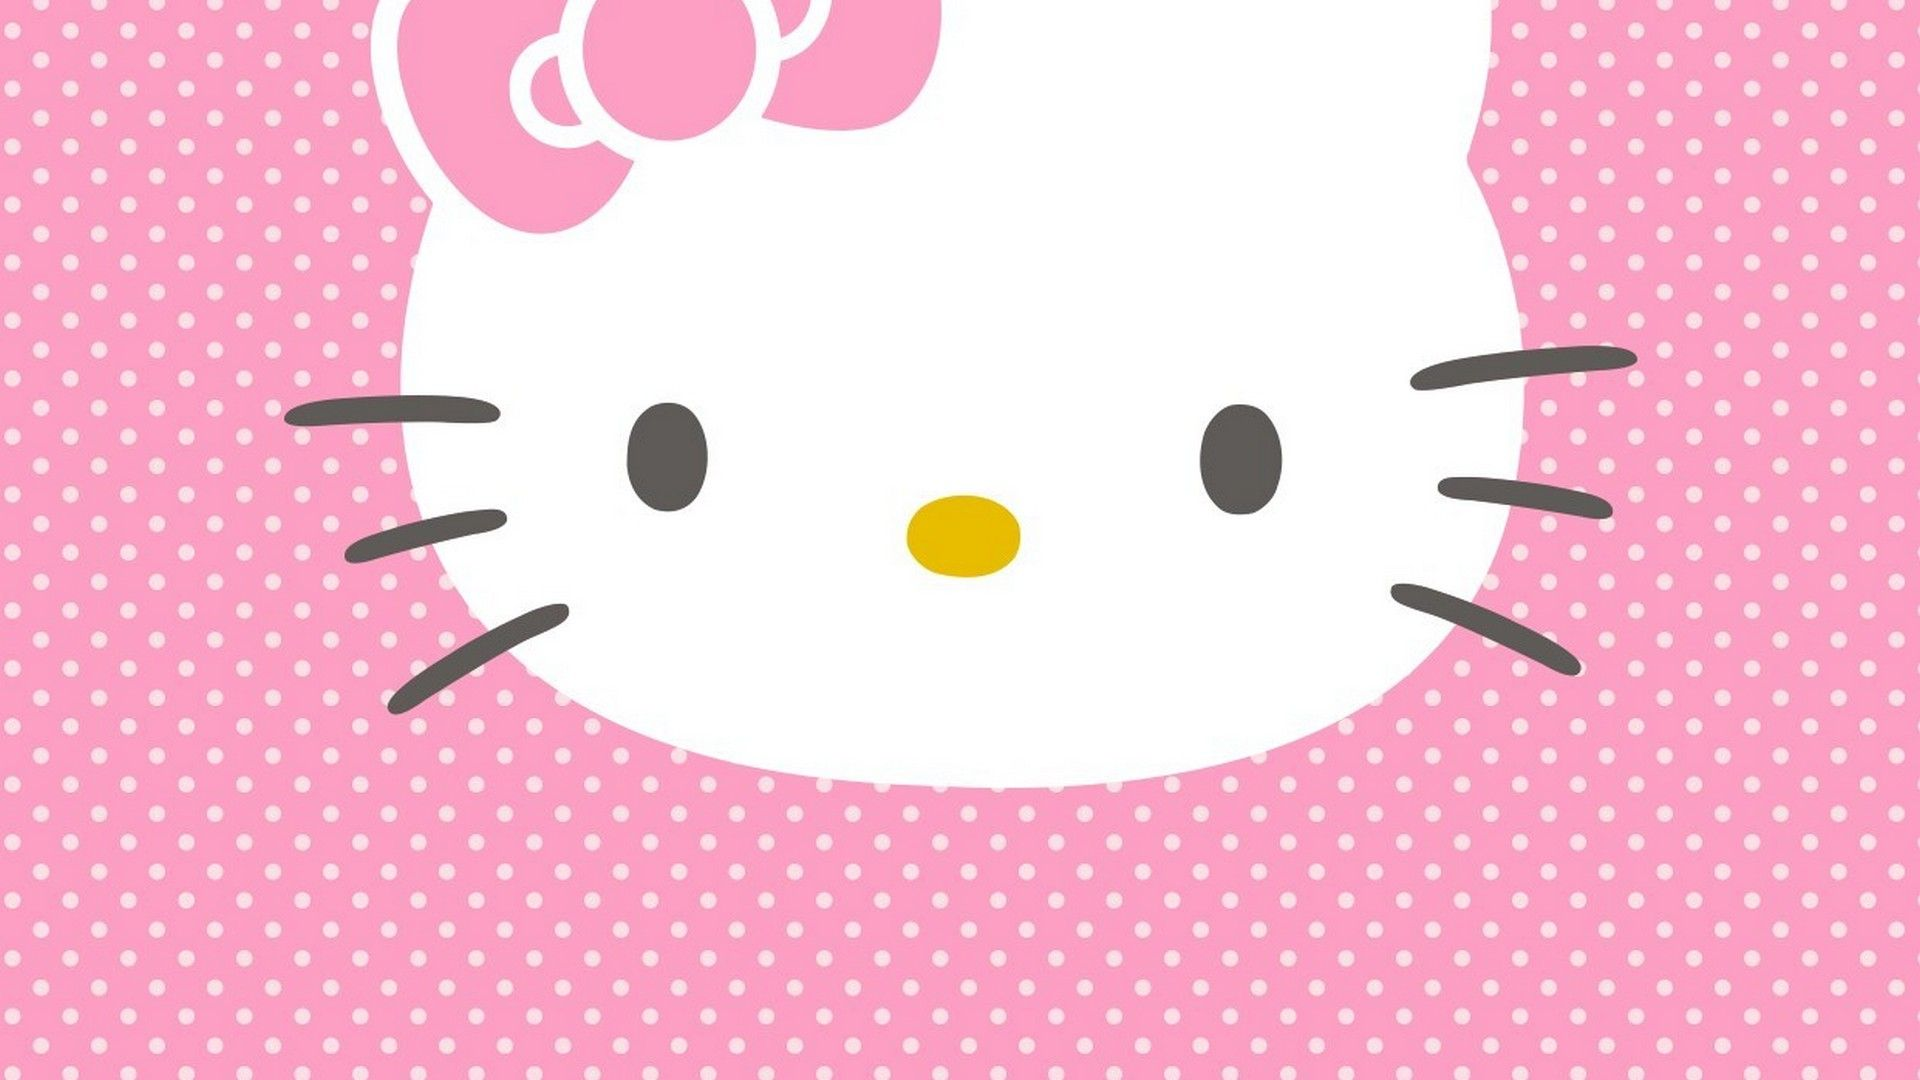 Live Wallpaper Hd Hello Kitty Wallpaper Hello Kitty Wallpaper Hd Hello Kitty Backgrounds